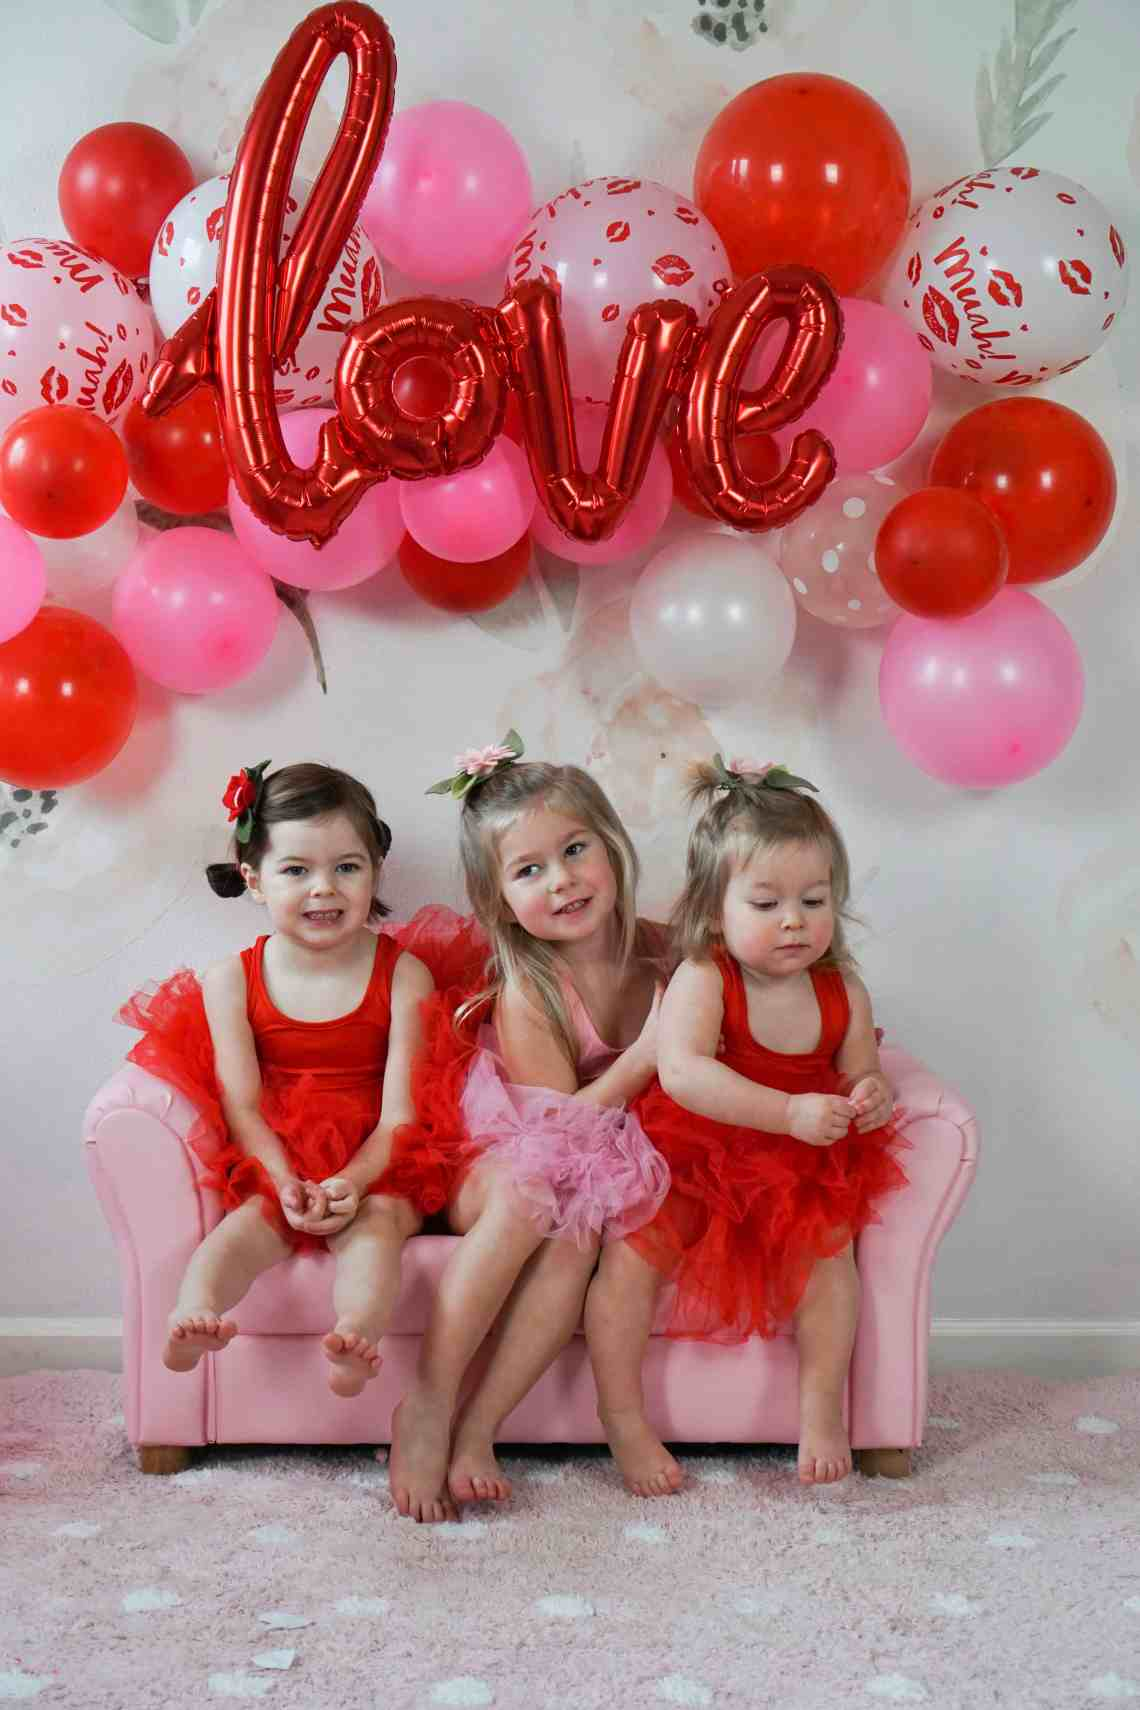 three toddler girls on pink couch in front of balloon wall